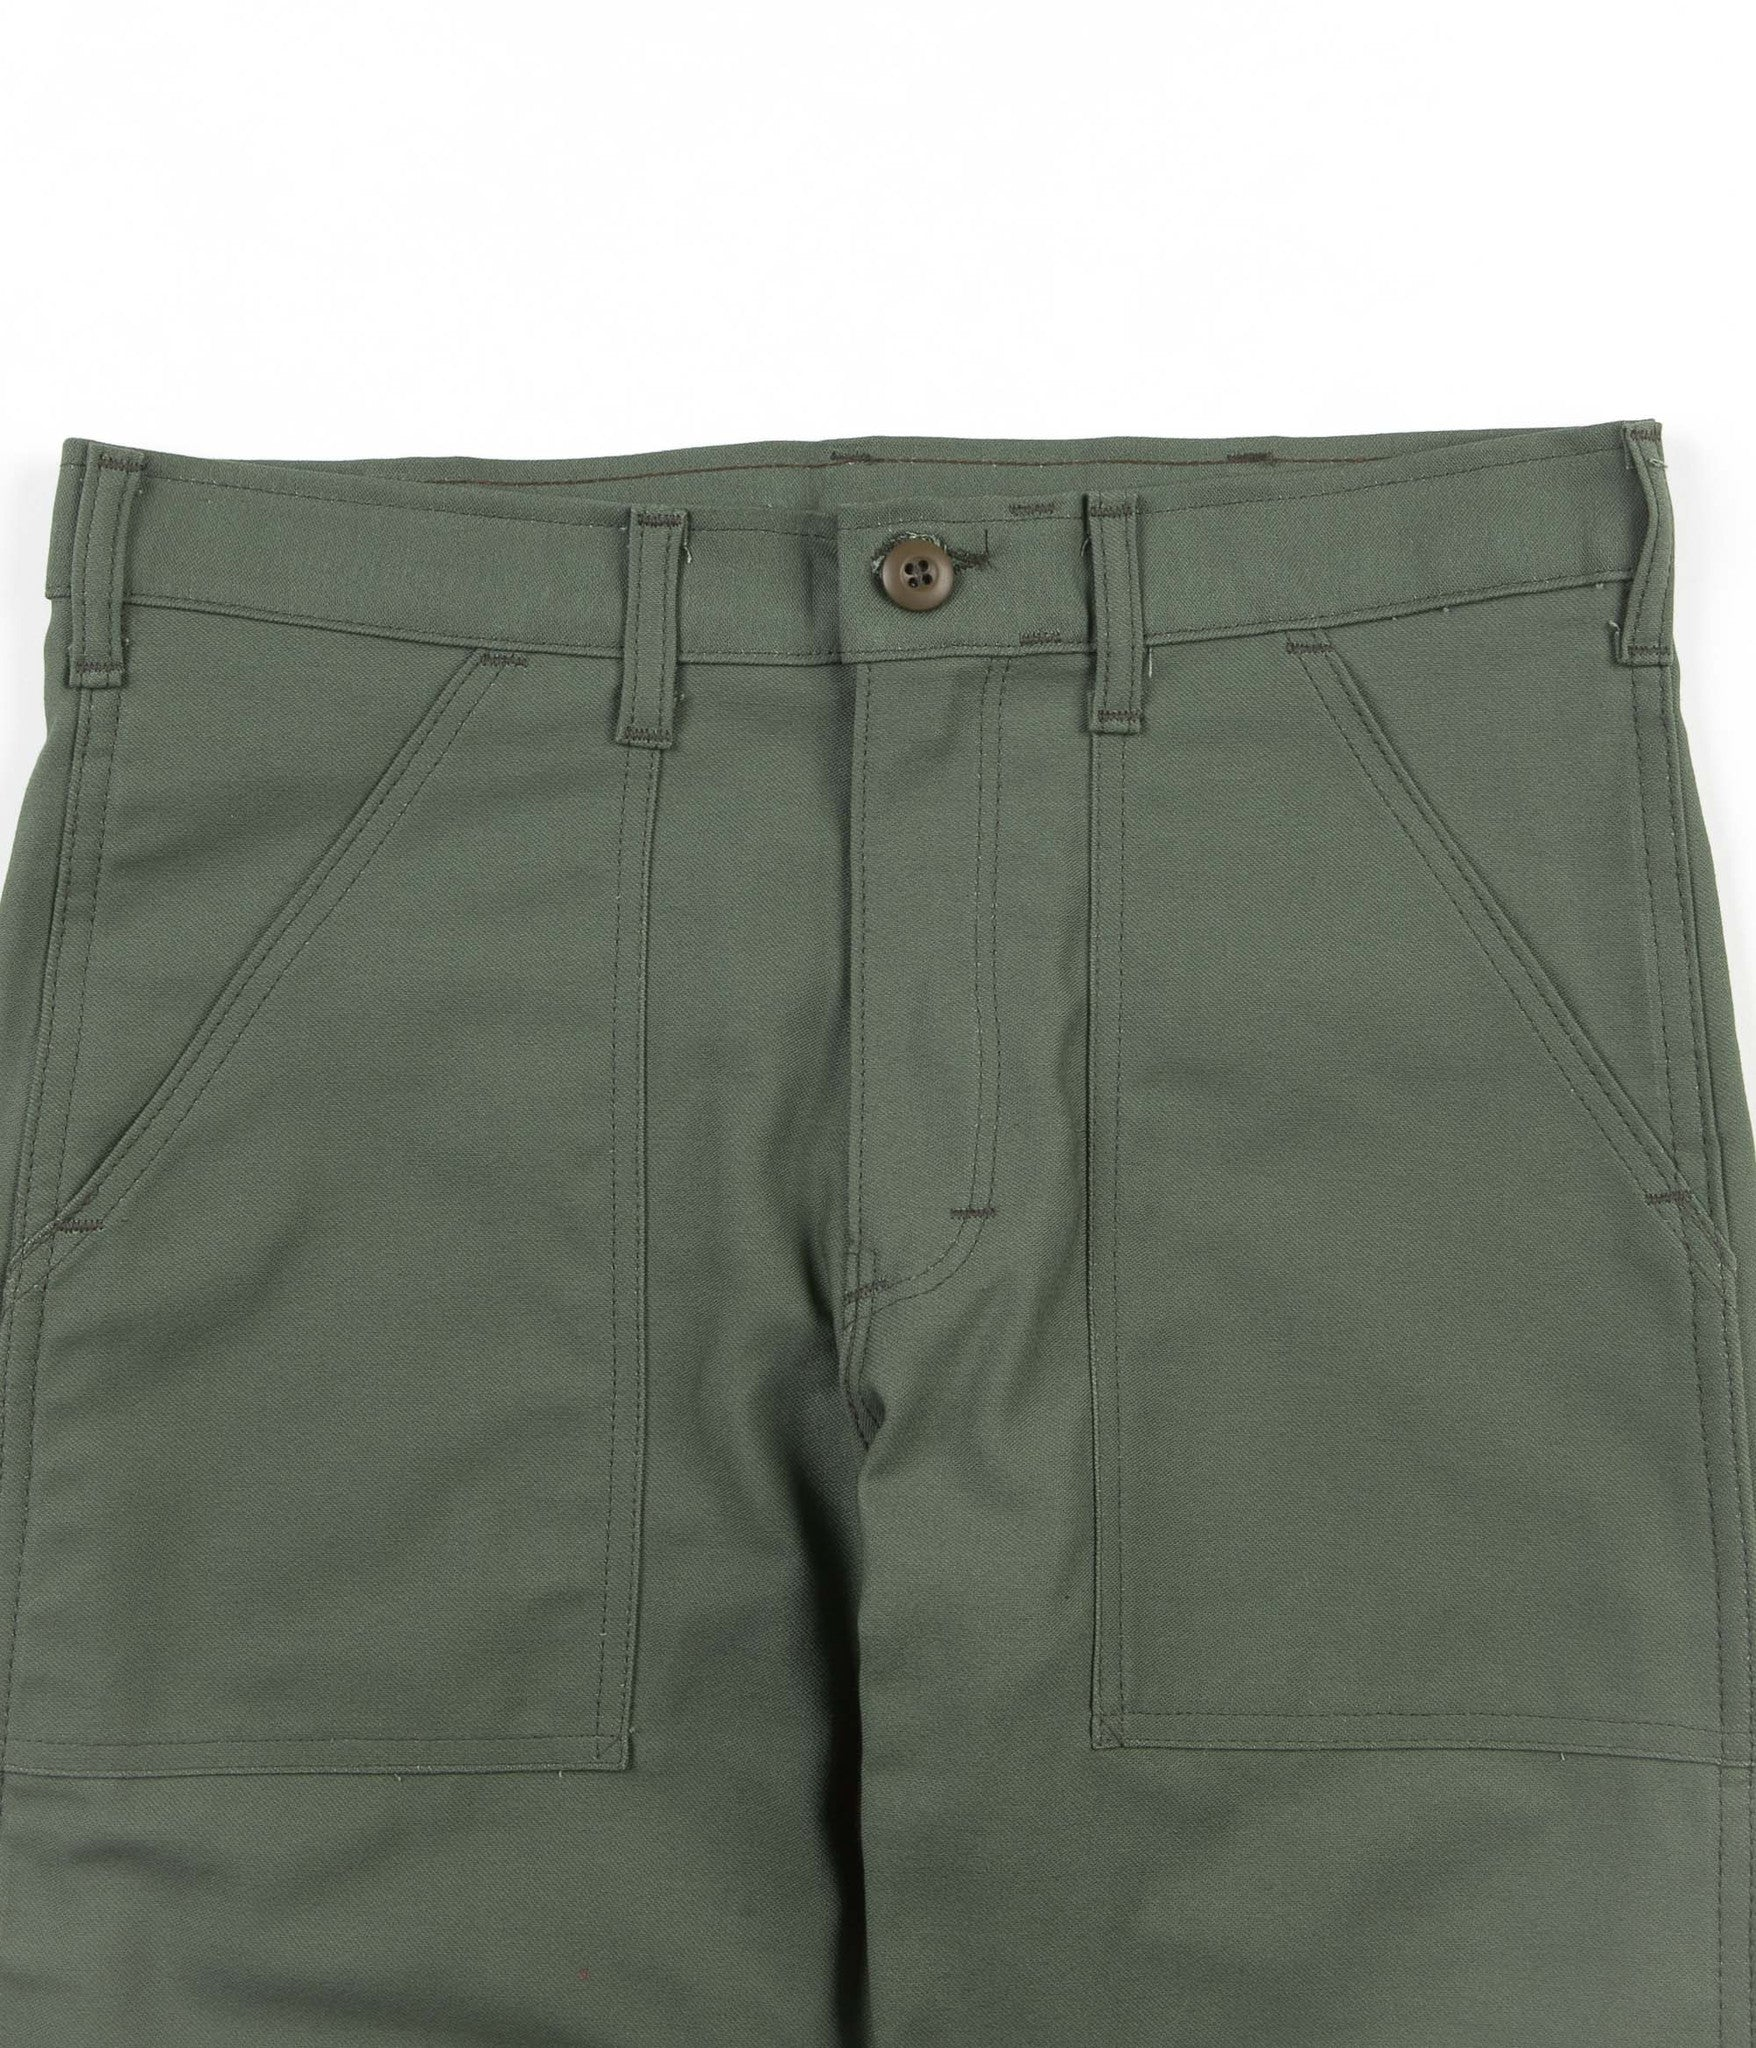 Stan Ray Slim Fit 4 Pocket Fatigue Trousers - Olive Sateen